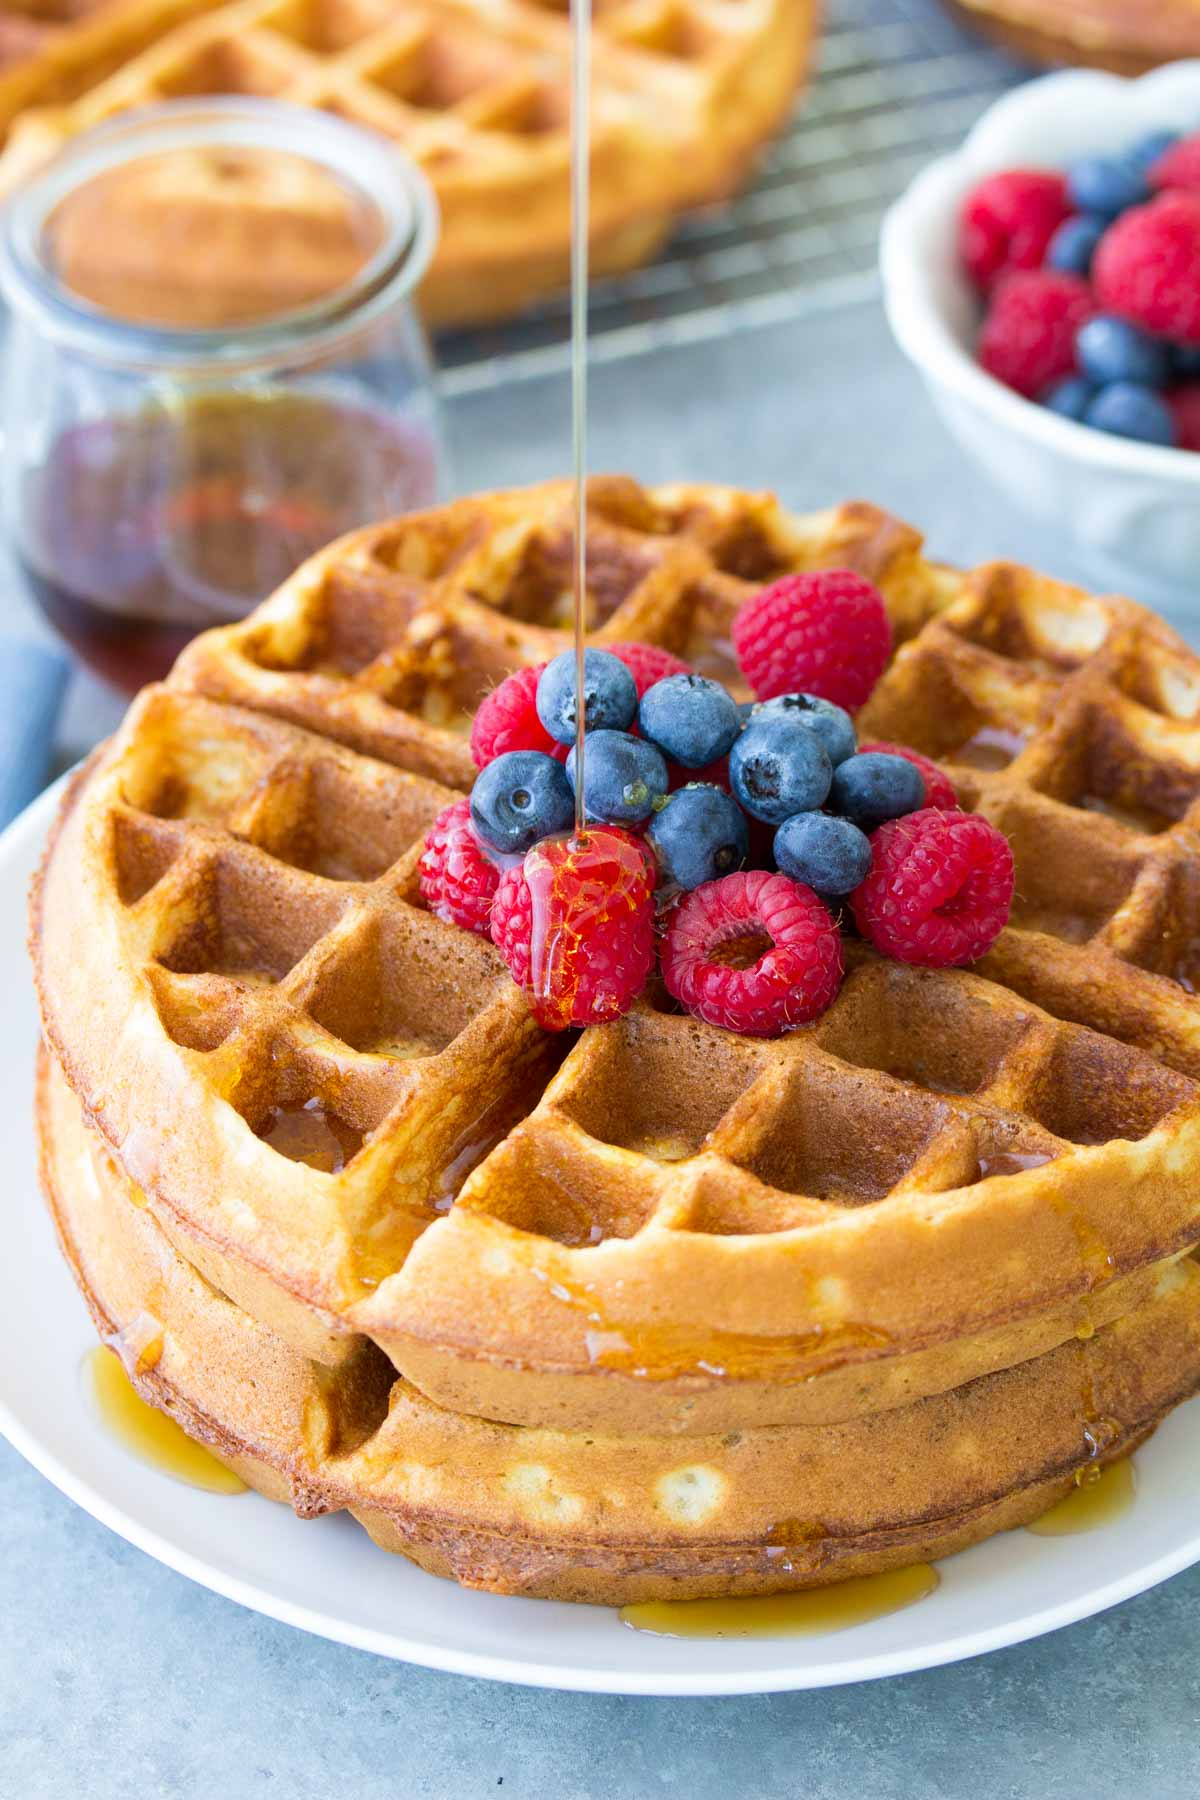 Light and crispy buttermilk waffles!! These healthier waffles take just 10 minutes prep! Store them in your freezer for easy meal prep breakfasts!